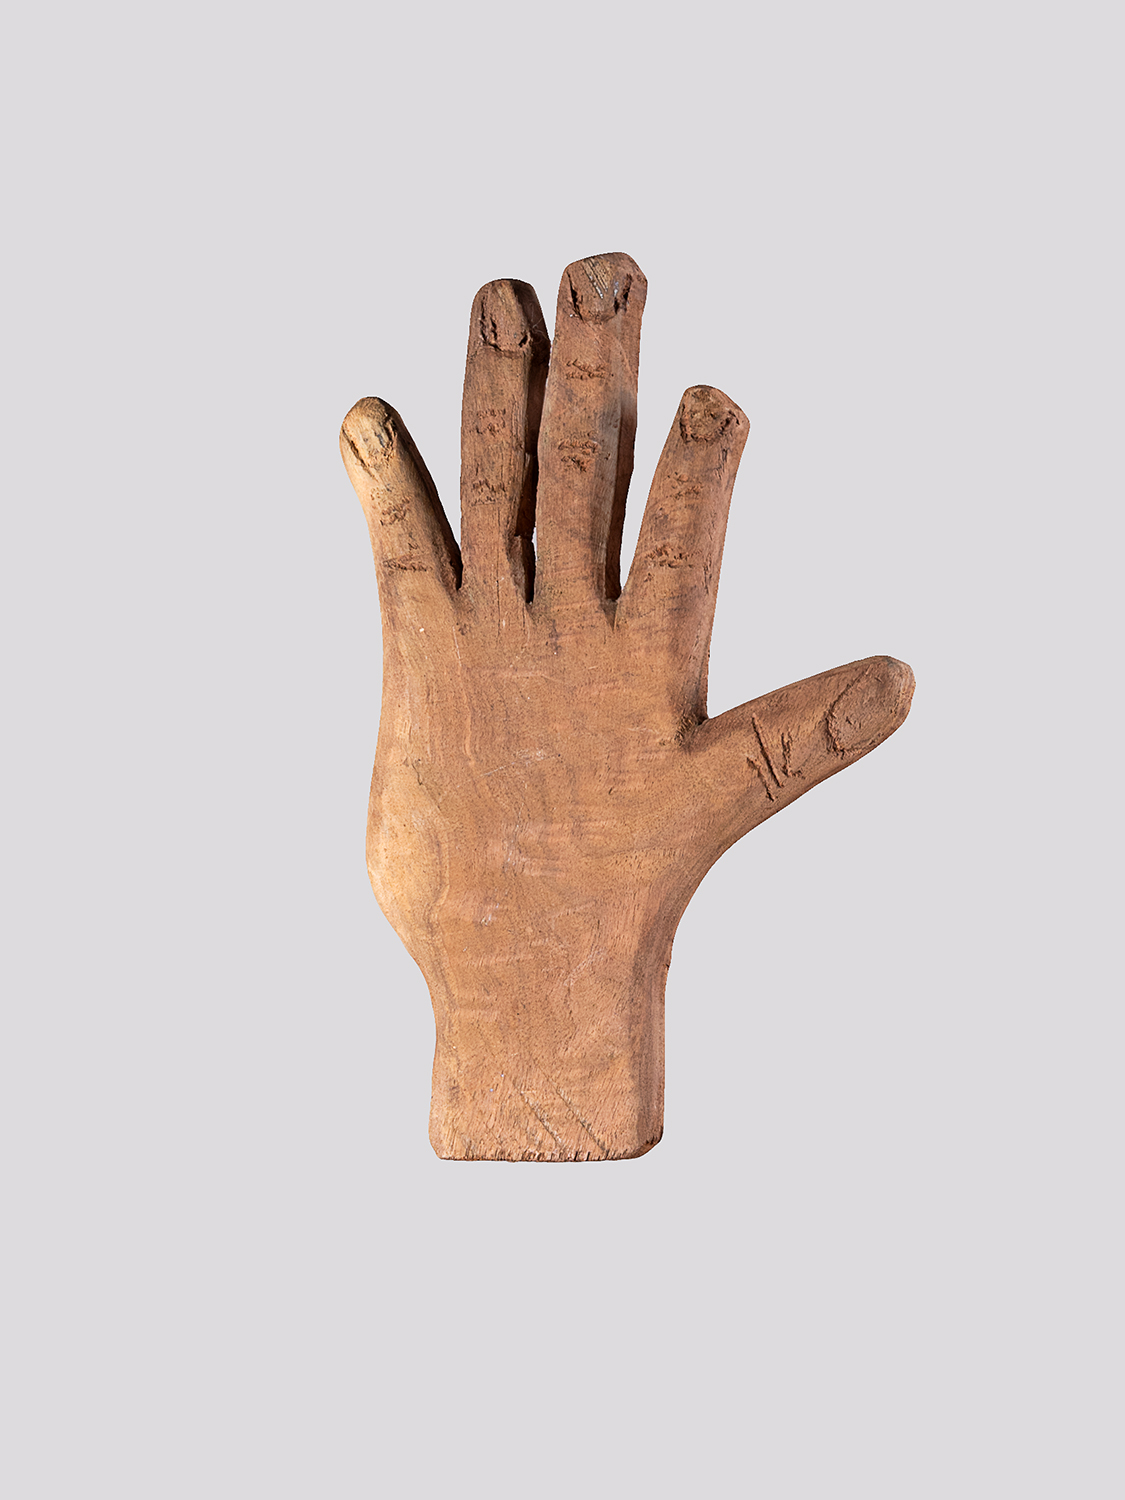 Oliver Moore's Hand, 2018